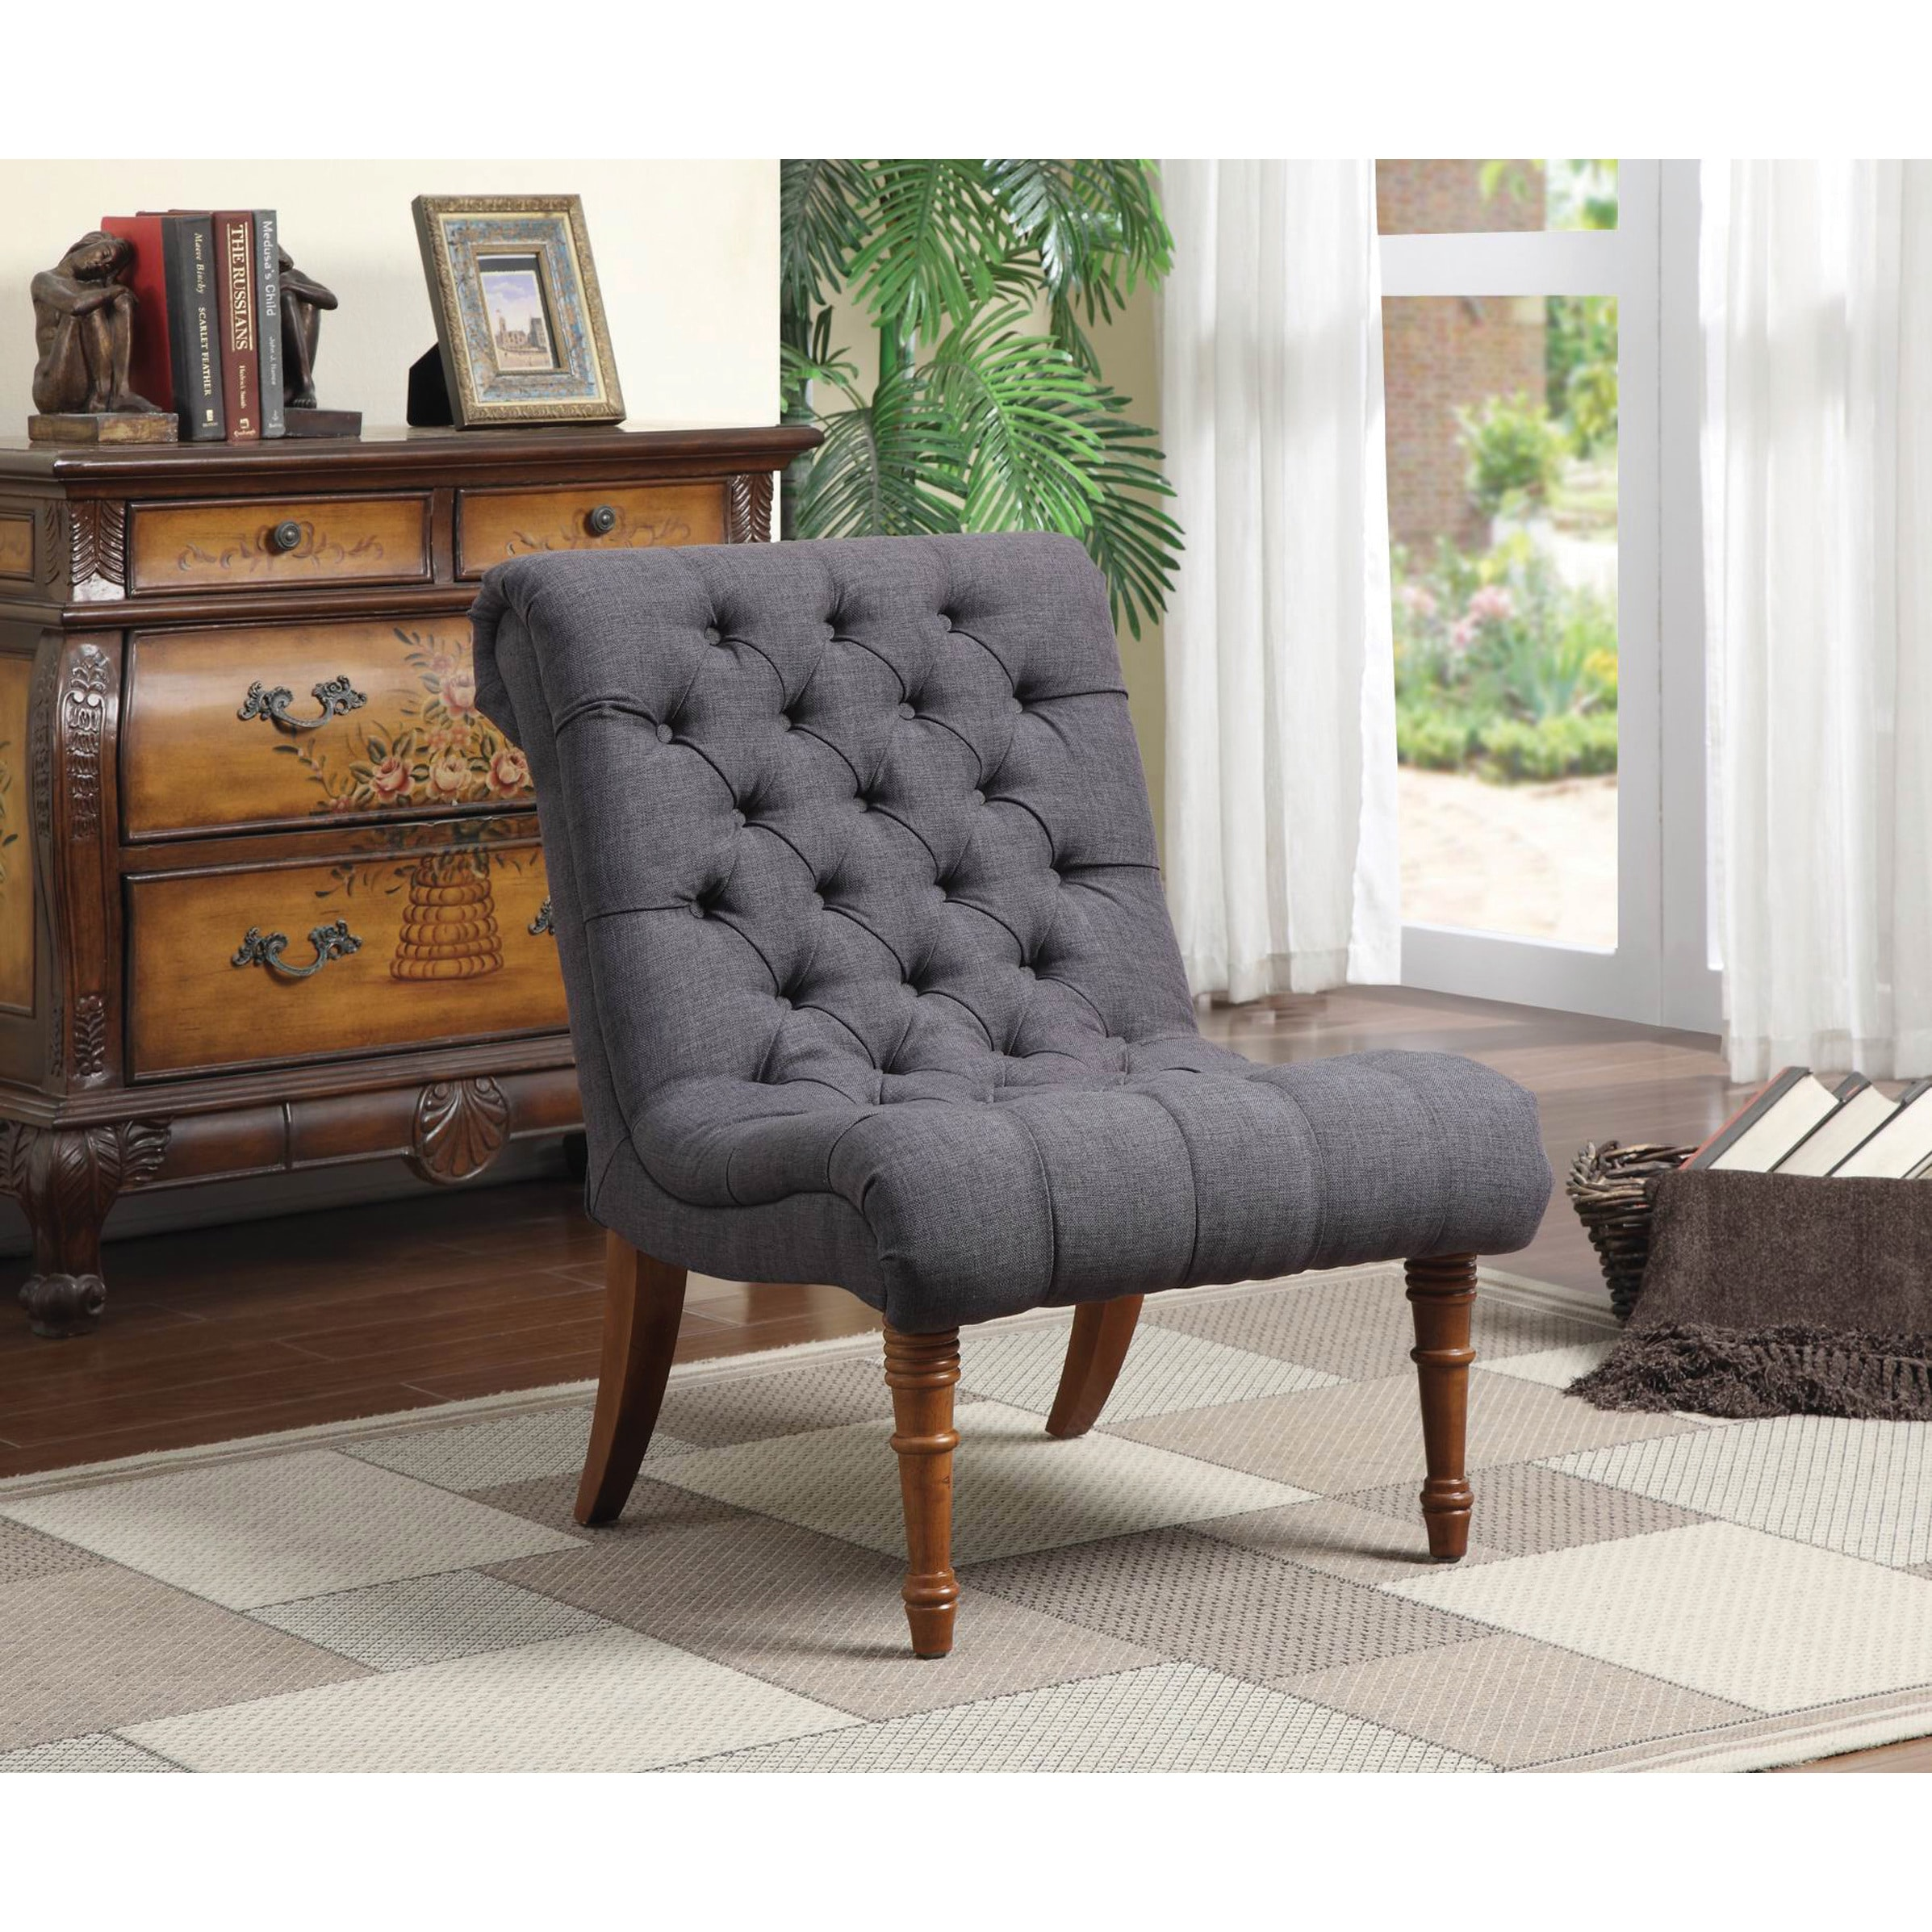 Coaster Company Tufted Woven Armless Accent Chair Grey Ebay # Muebles Coaster